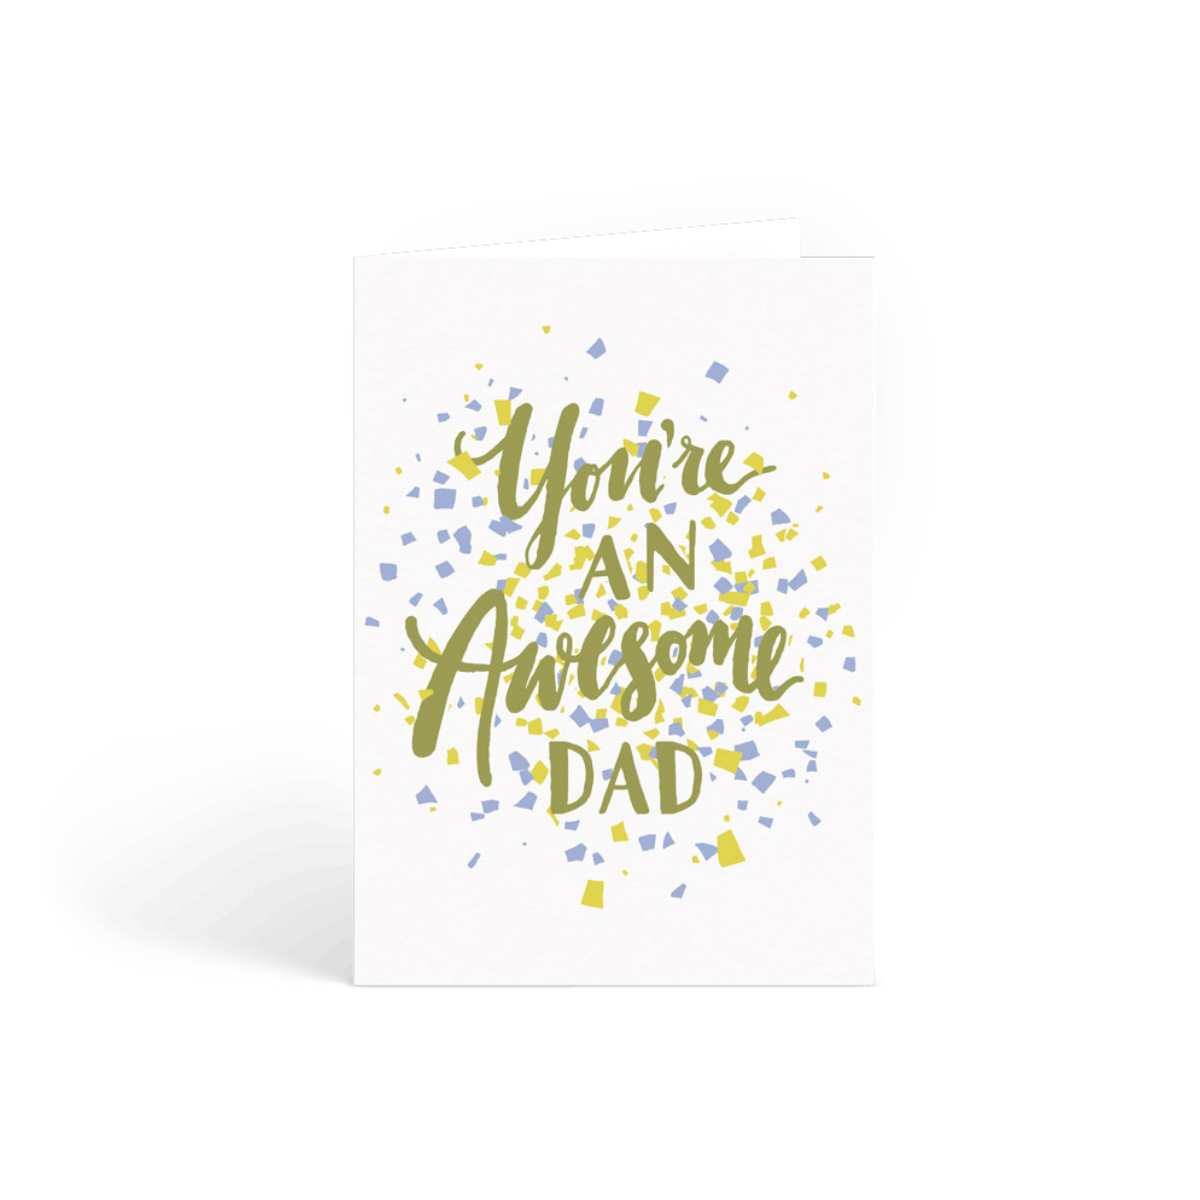 Https%3a%2f%2fwww.papier.com%2fproduct image%2f17935%2f2%2fawesome dad 4678 front 1581453216.png?ixlib=rb 1.1